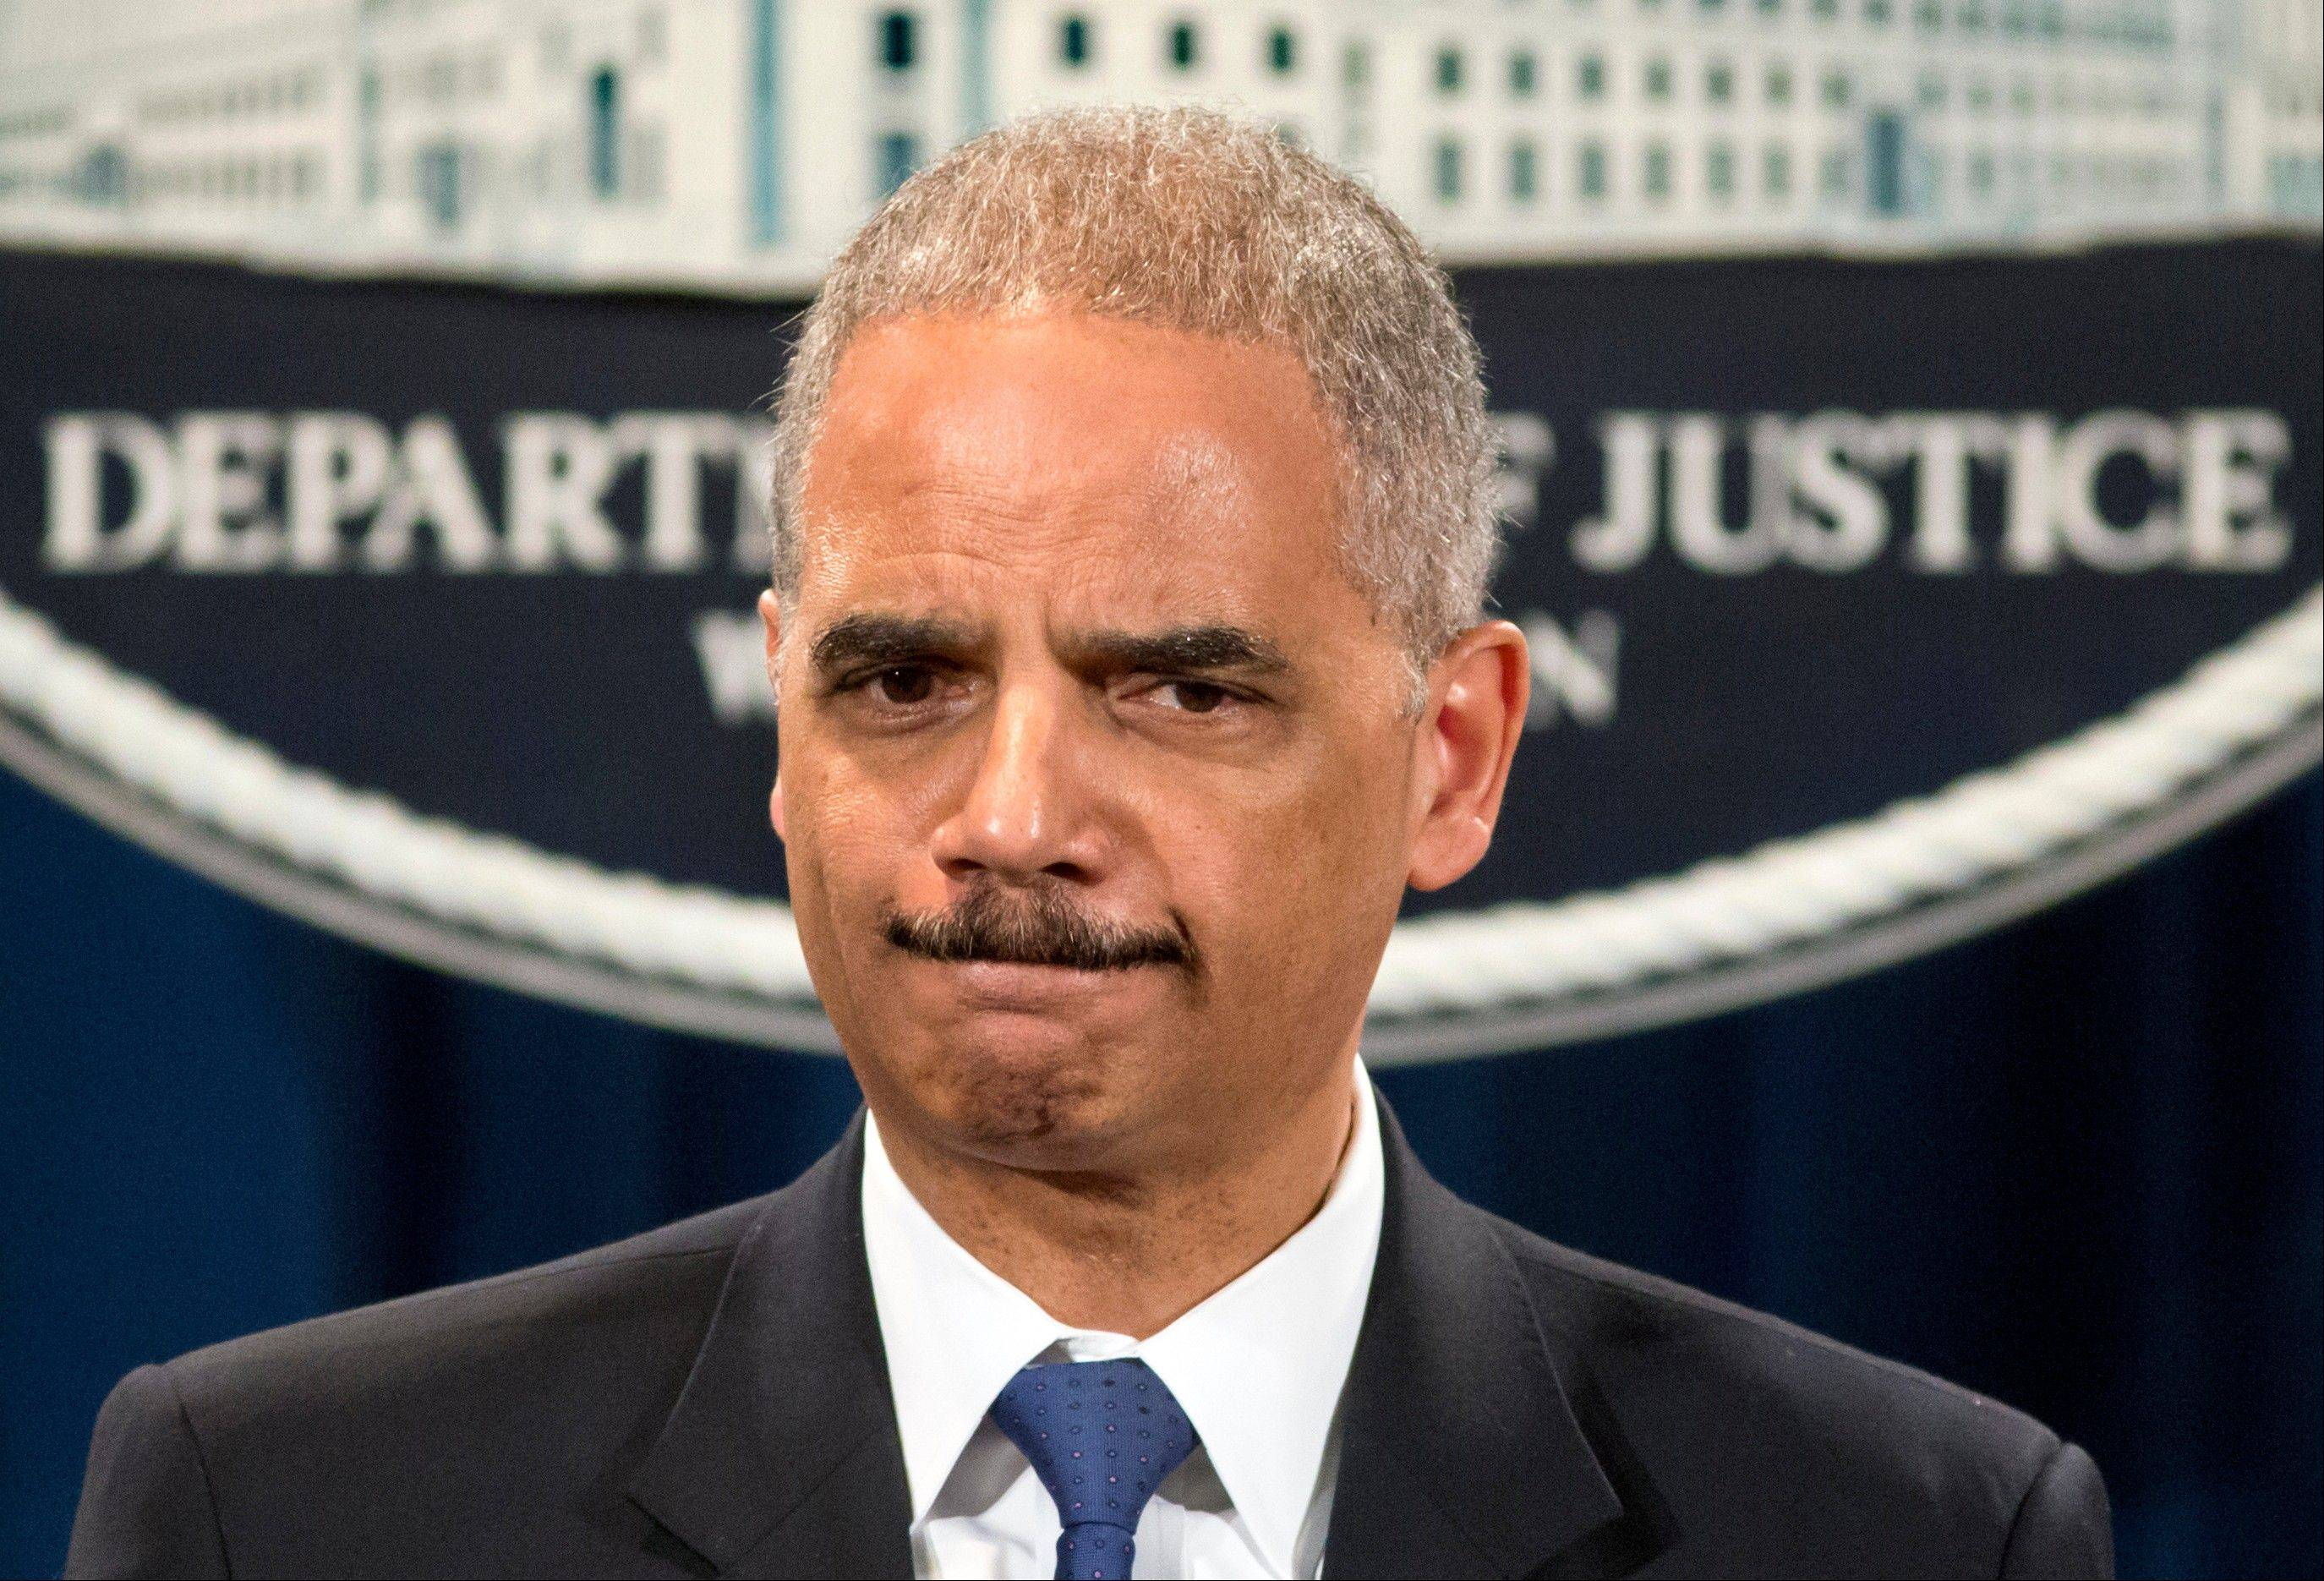 Attorney General Eric Holder, during a news conference Tuesday, is questioned about the Justice Department secretly obtaining telephone records of reporters and editors for The Associated Press.